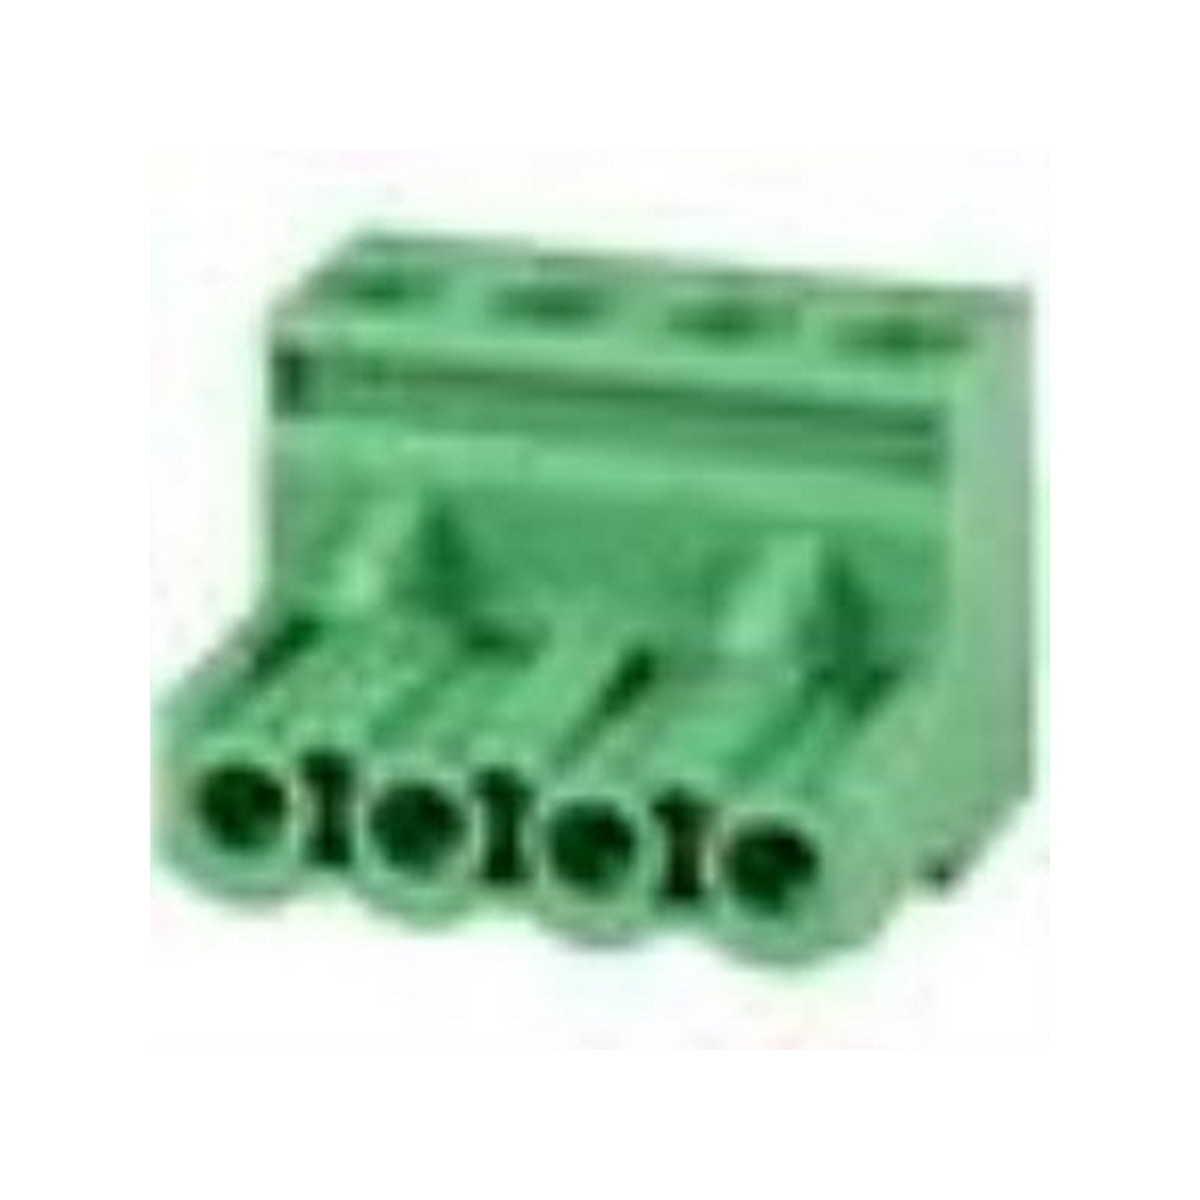 Phoenix Type Connector 4-Pole 5mm Pitch 4-Pack